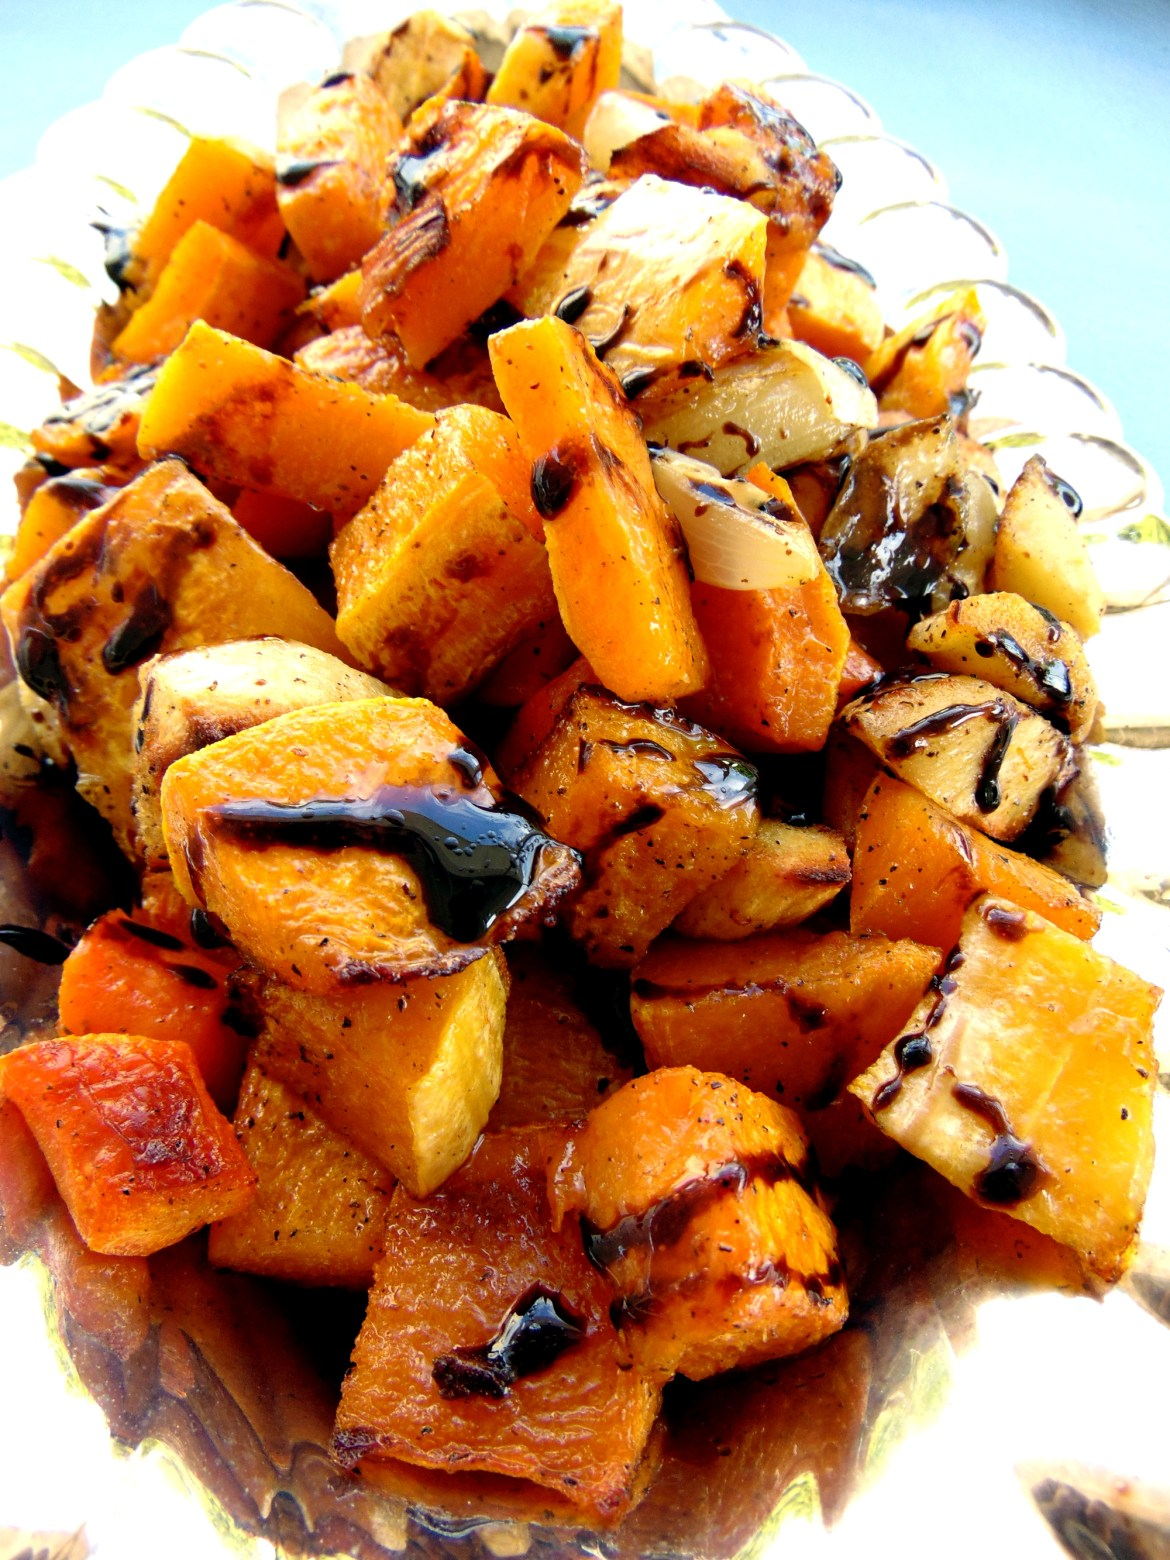 Roasted vegetables and balsamic dressing